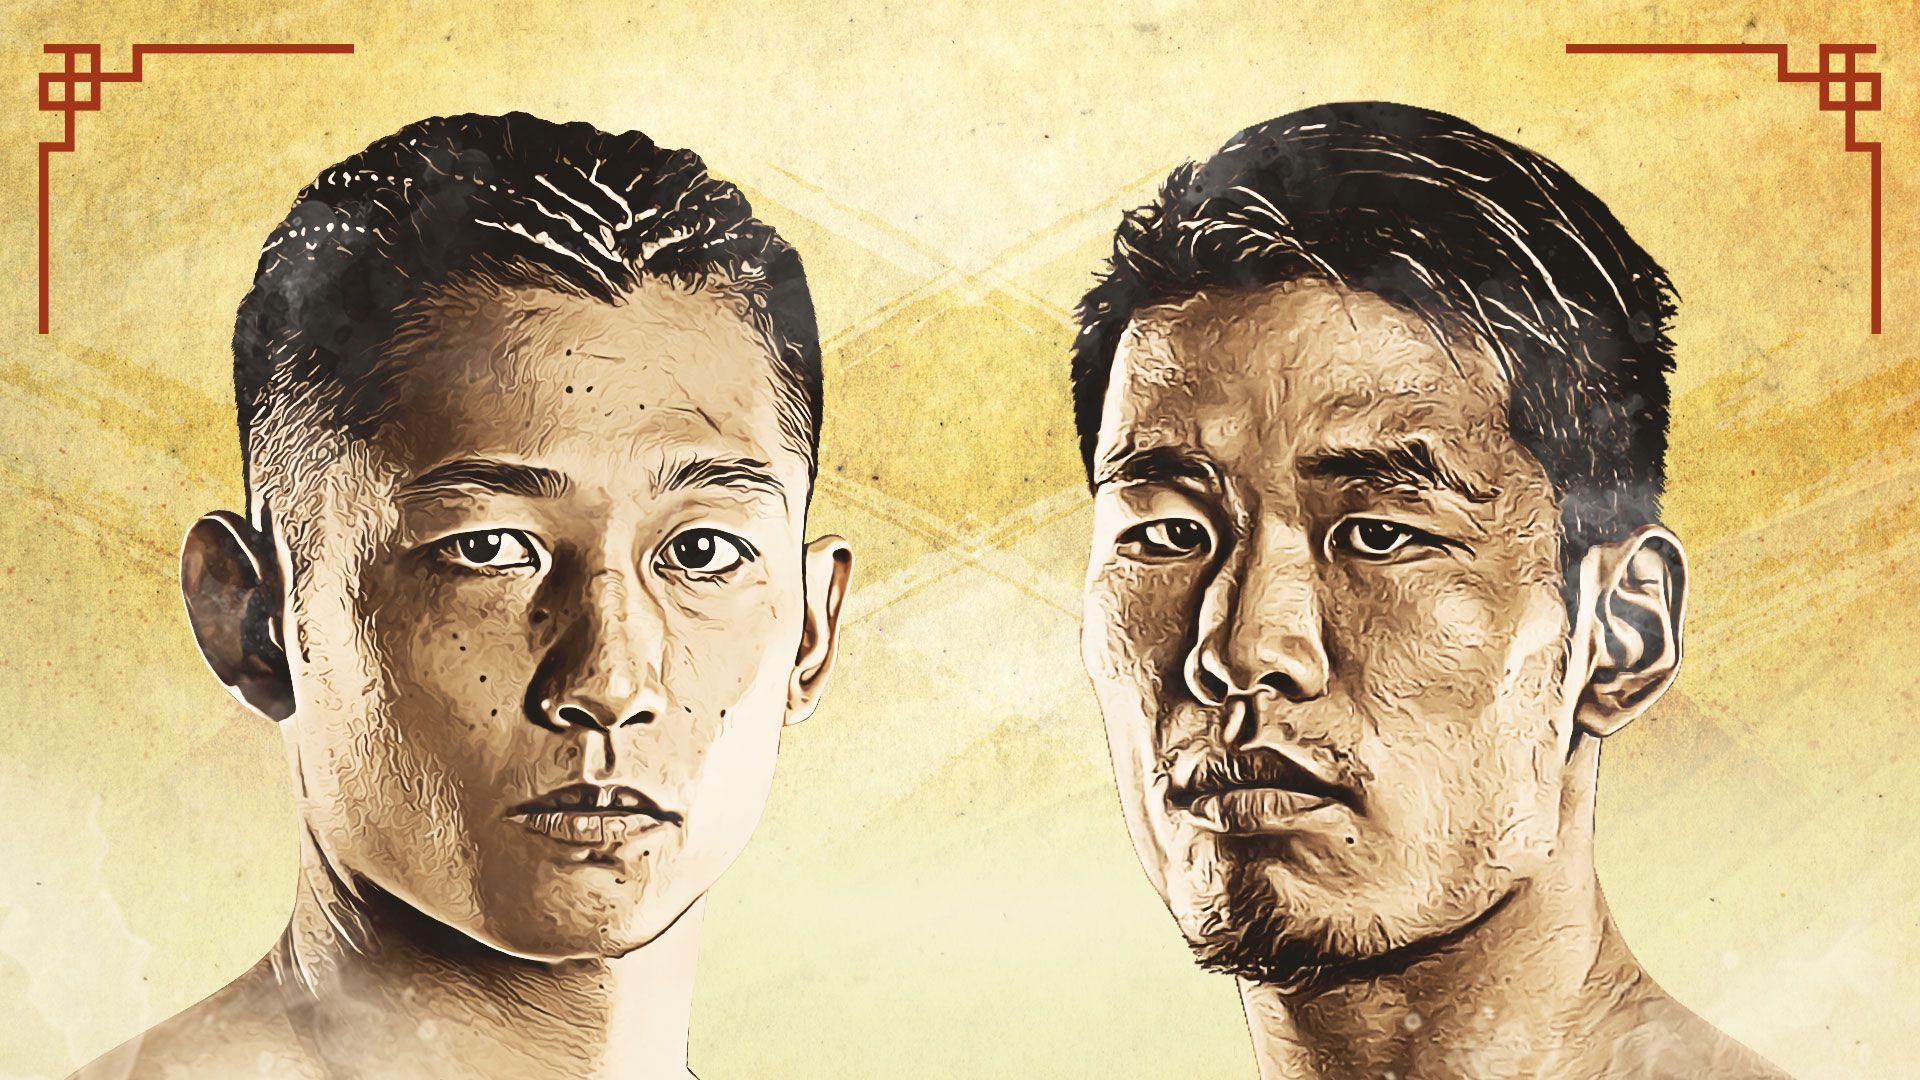 HIroki Akimoto fights Zhang Chenglong at ONE: FISTS OF FURY on 26 February!